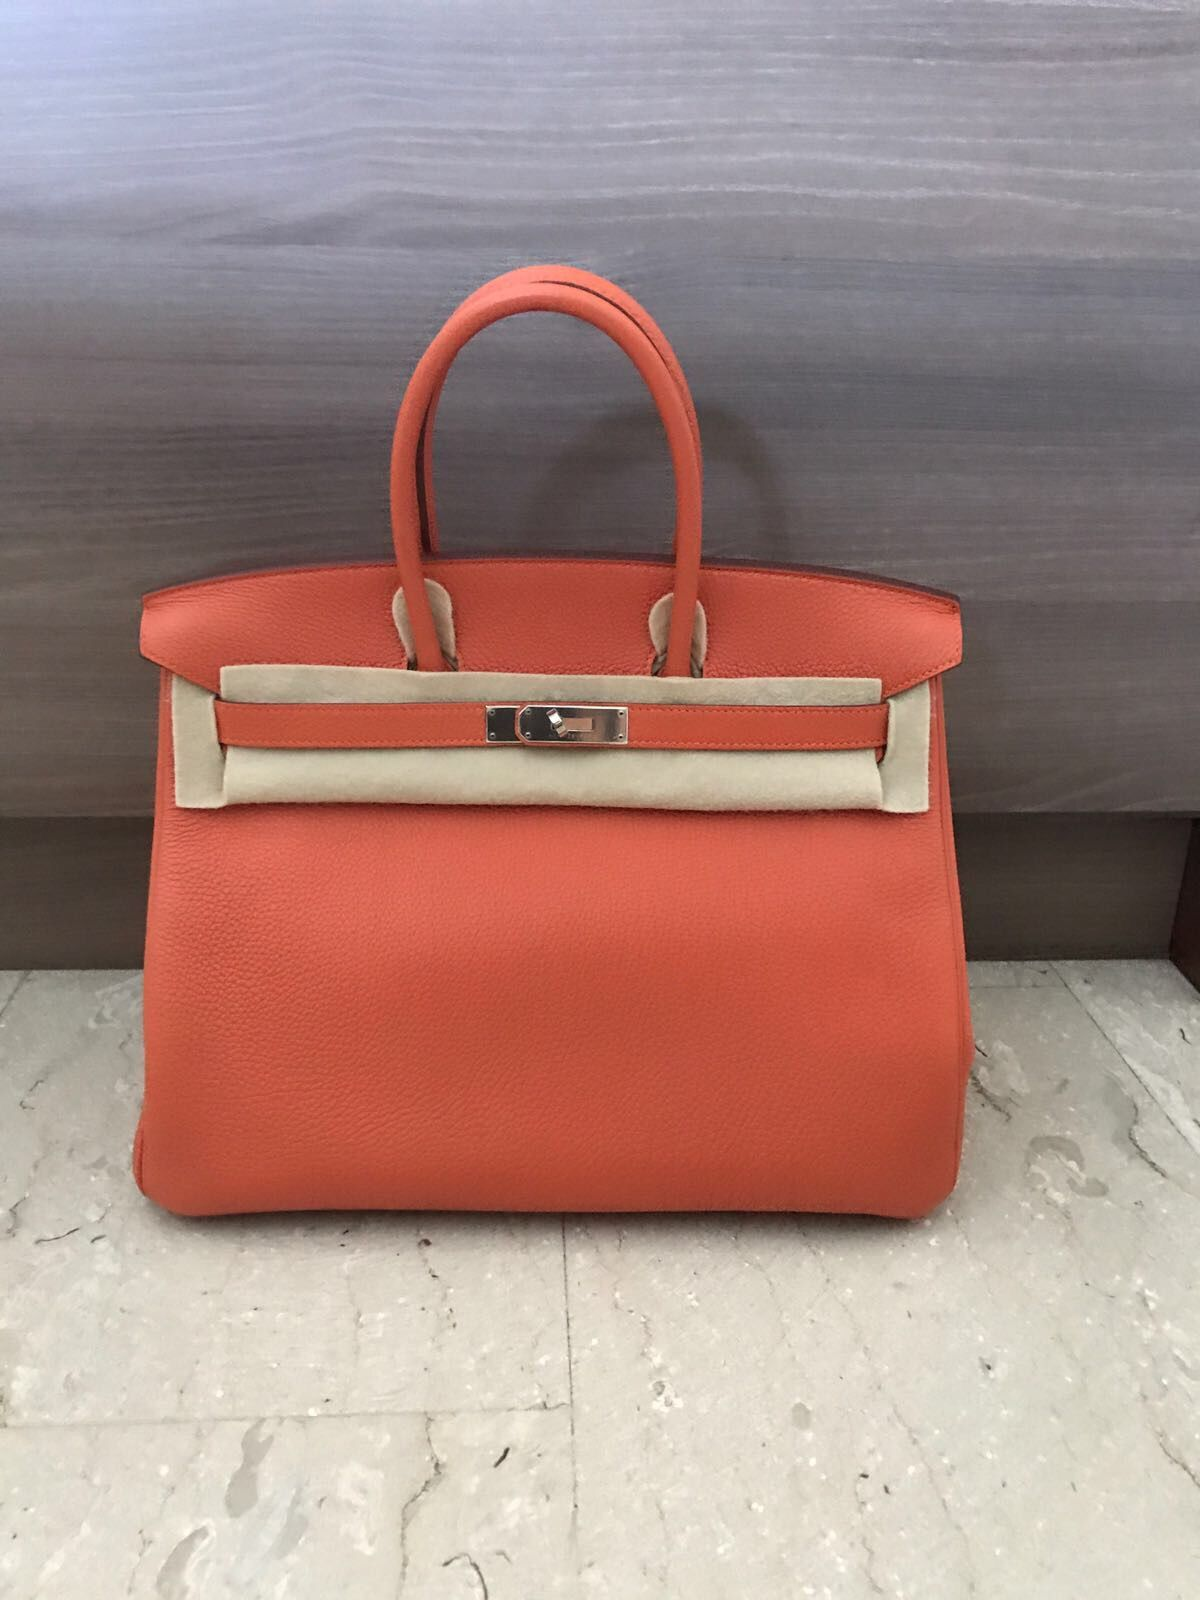 0059e2ec068f Model  Hermes Birkin 35 Stamp  Q square Color  Orange Leather  Togo Hardware